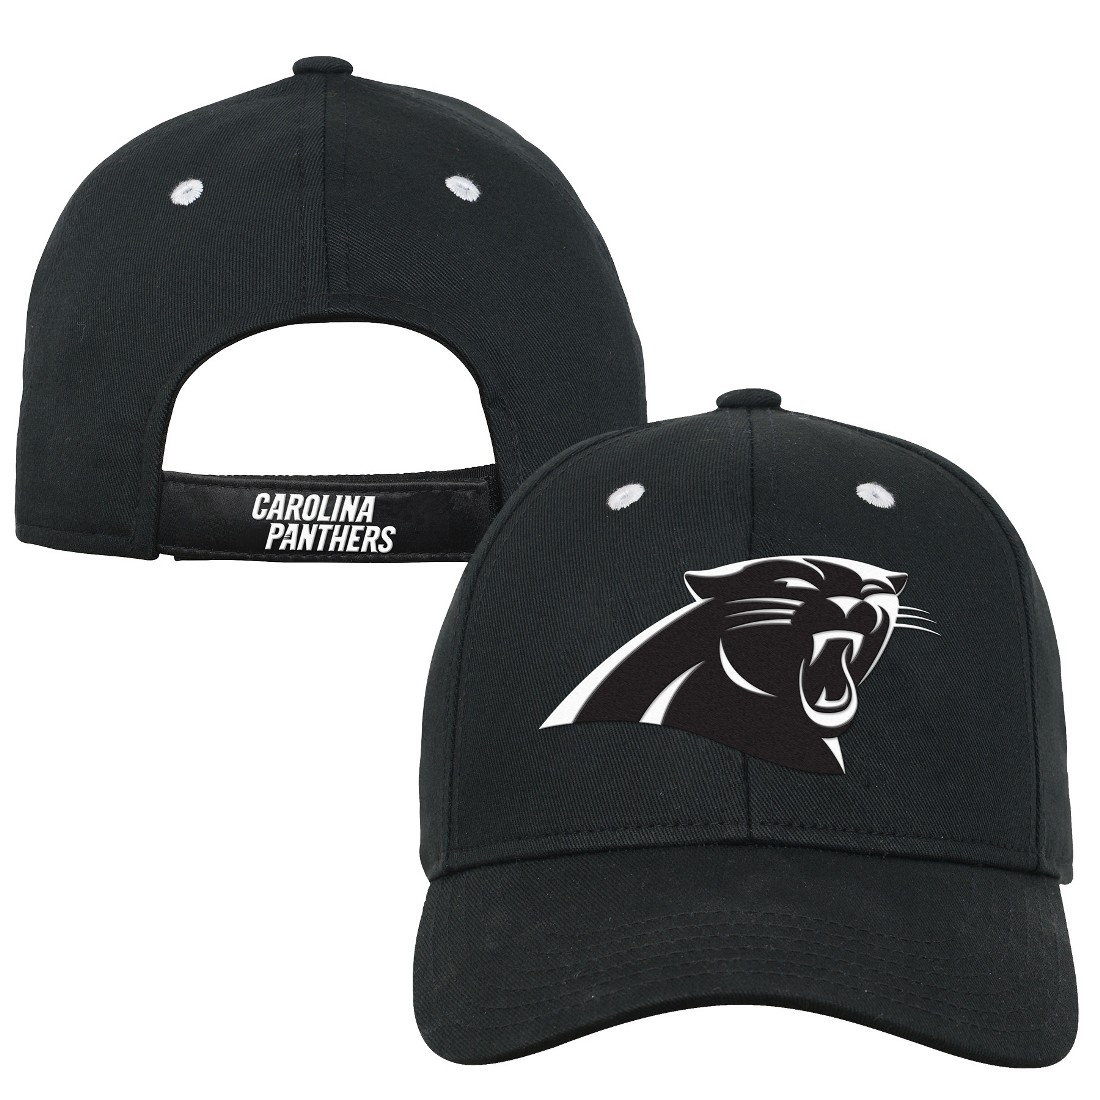 reputable site 16ebe 93f01 ... norway product image carolina panthers youth nfl black white structured  adjustable hat 537cc 24455